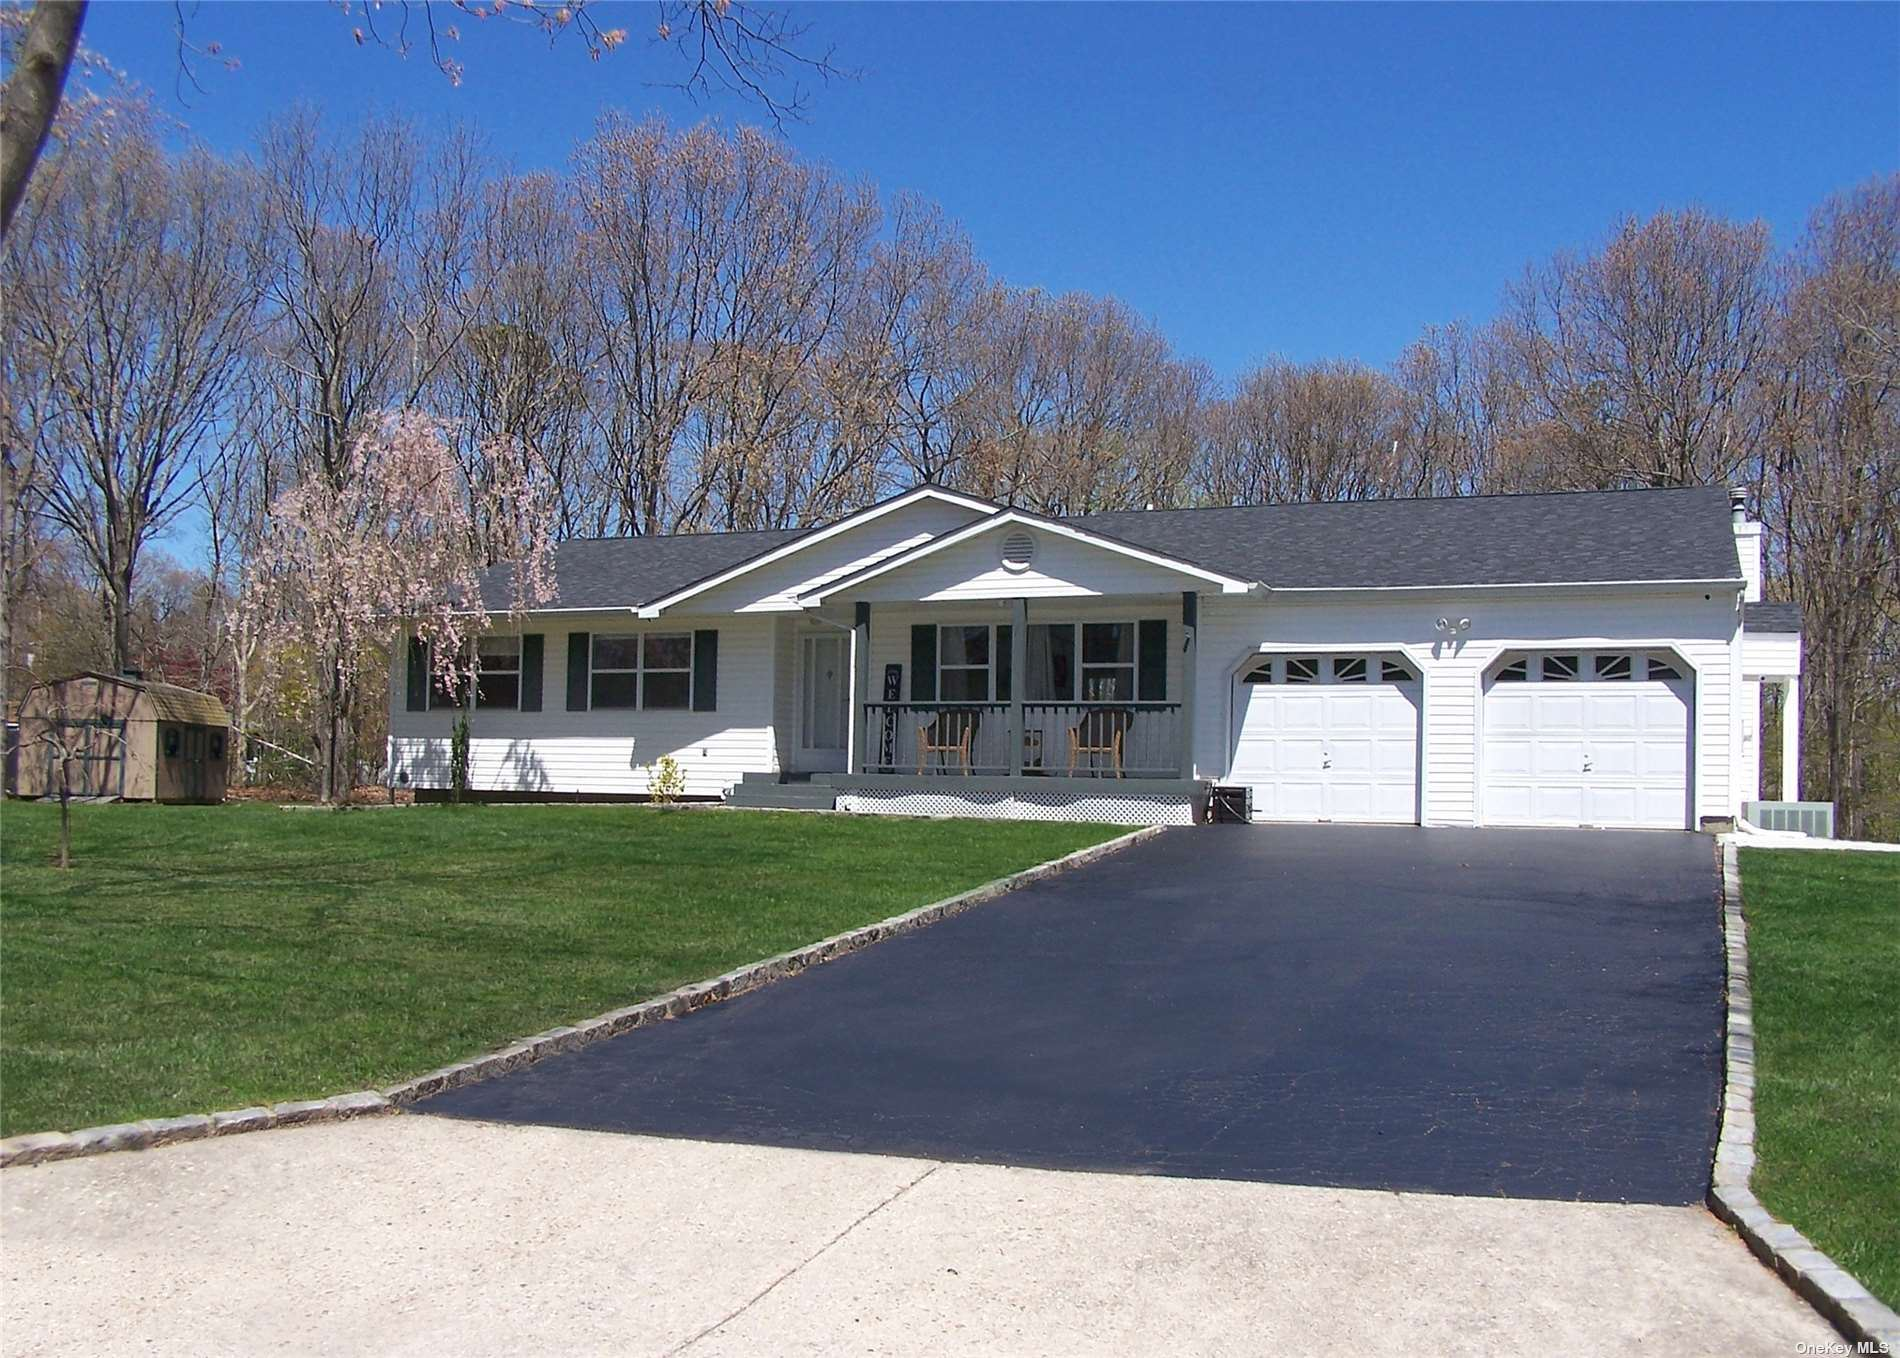 19 Eastbourne Crescent, East Patchogue, NY 11772 - MLS#: 3307825